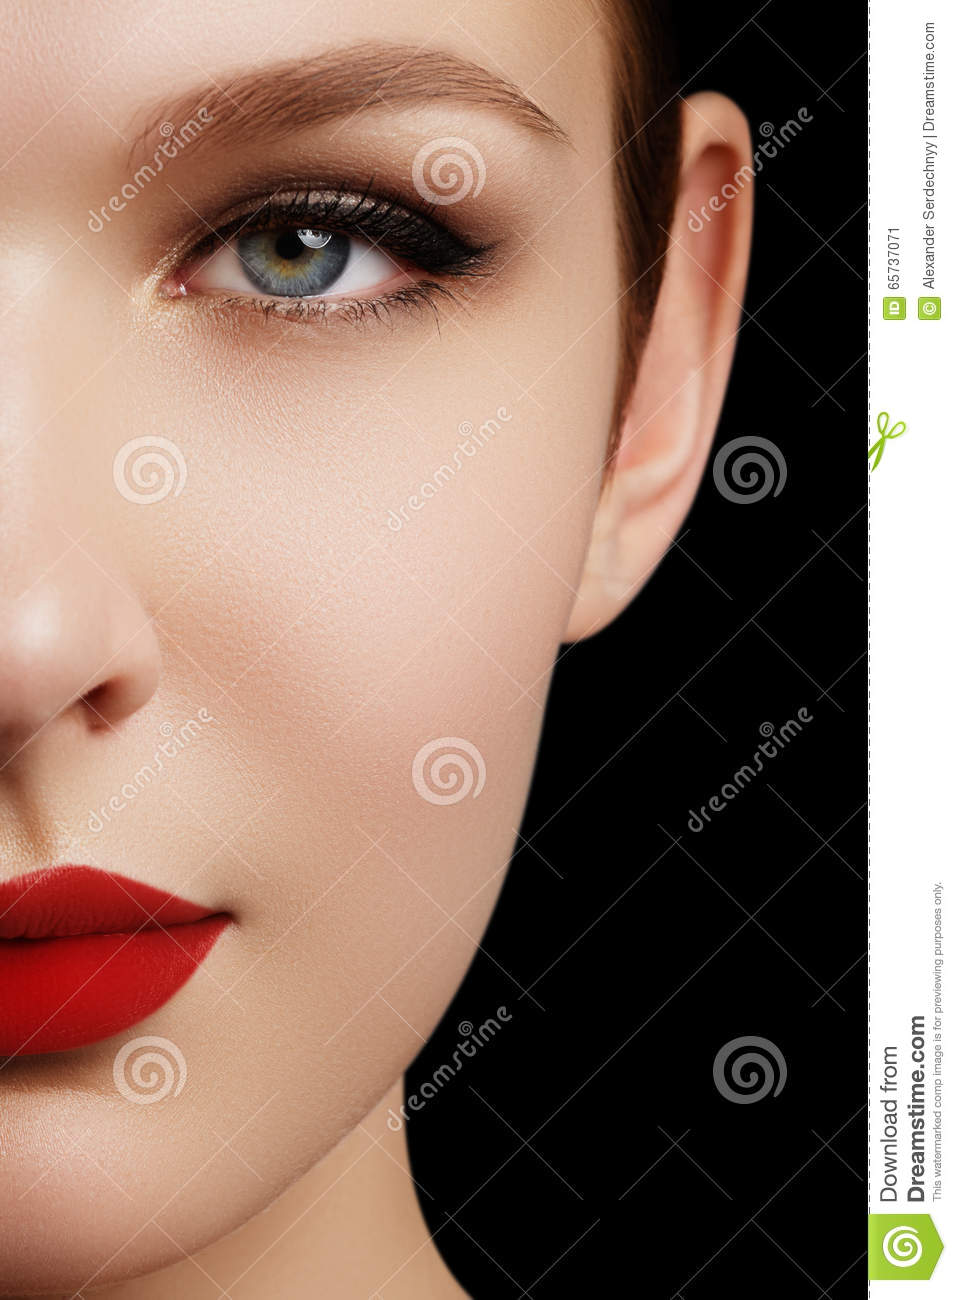 Make-up and cosmetics. Beauty woman face isolated on black background. Beautiful model girl makeup. Gorgeous lady with blue eyes